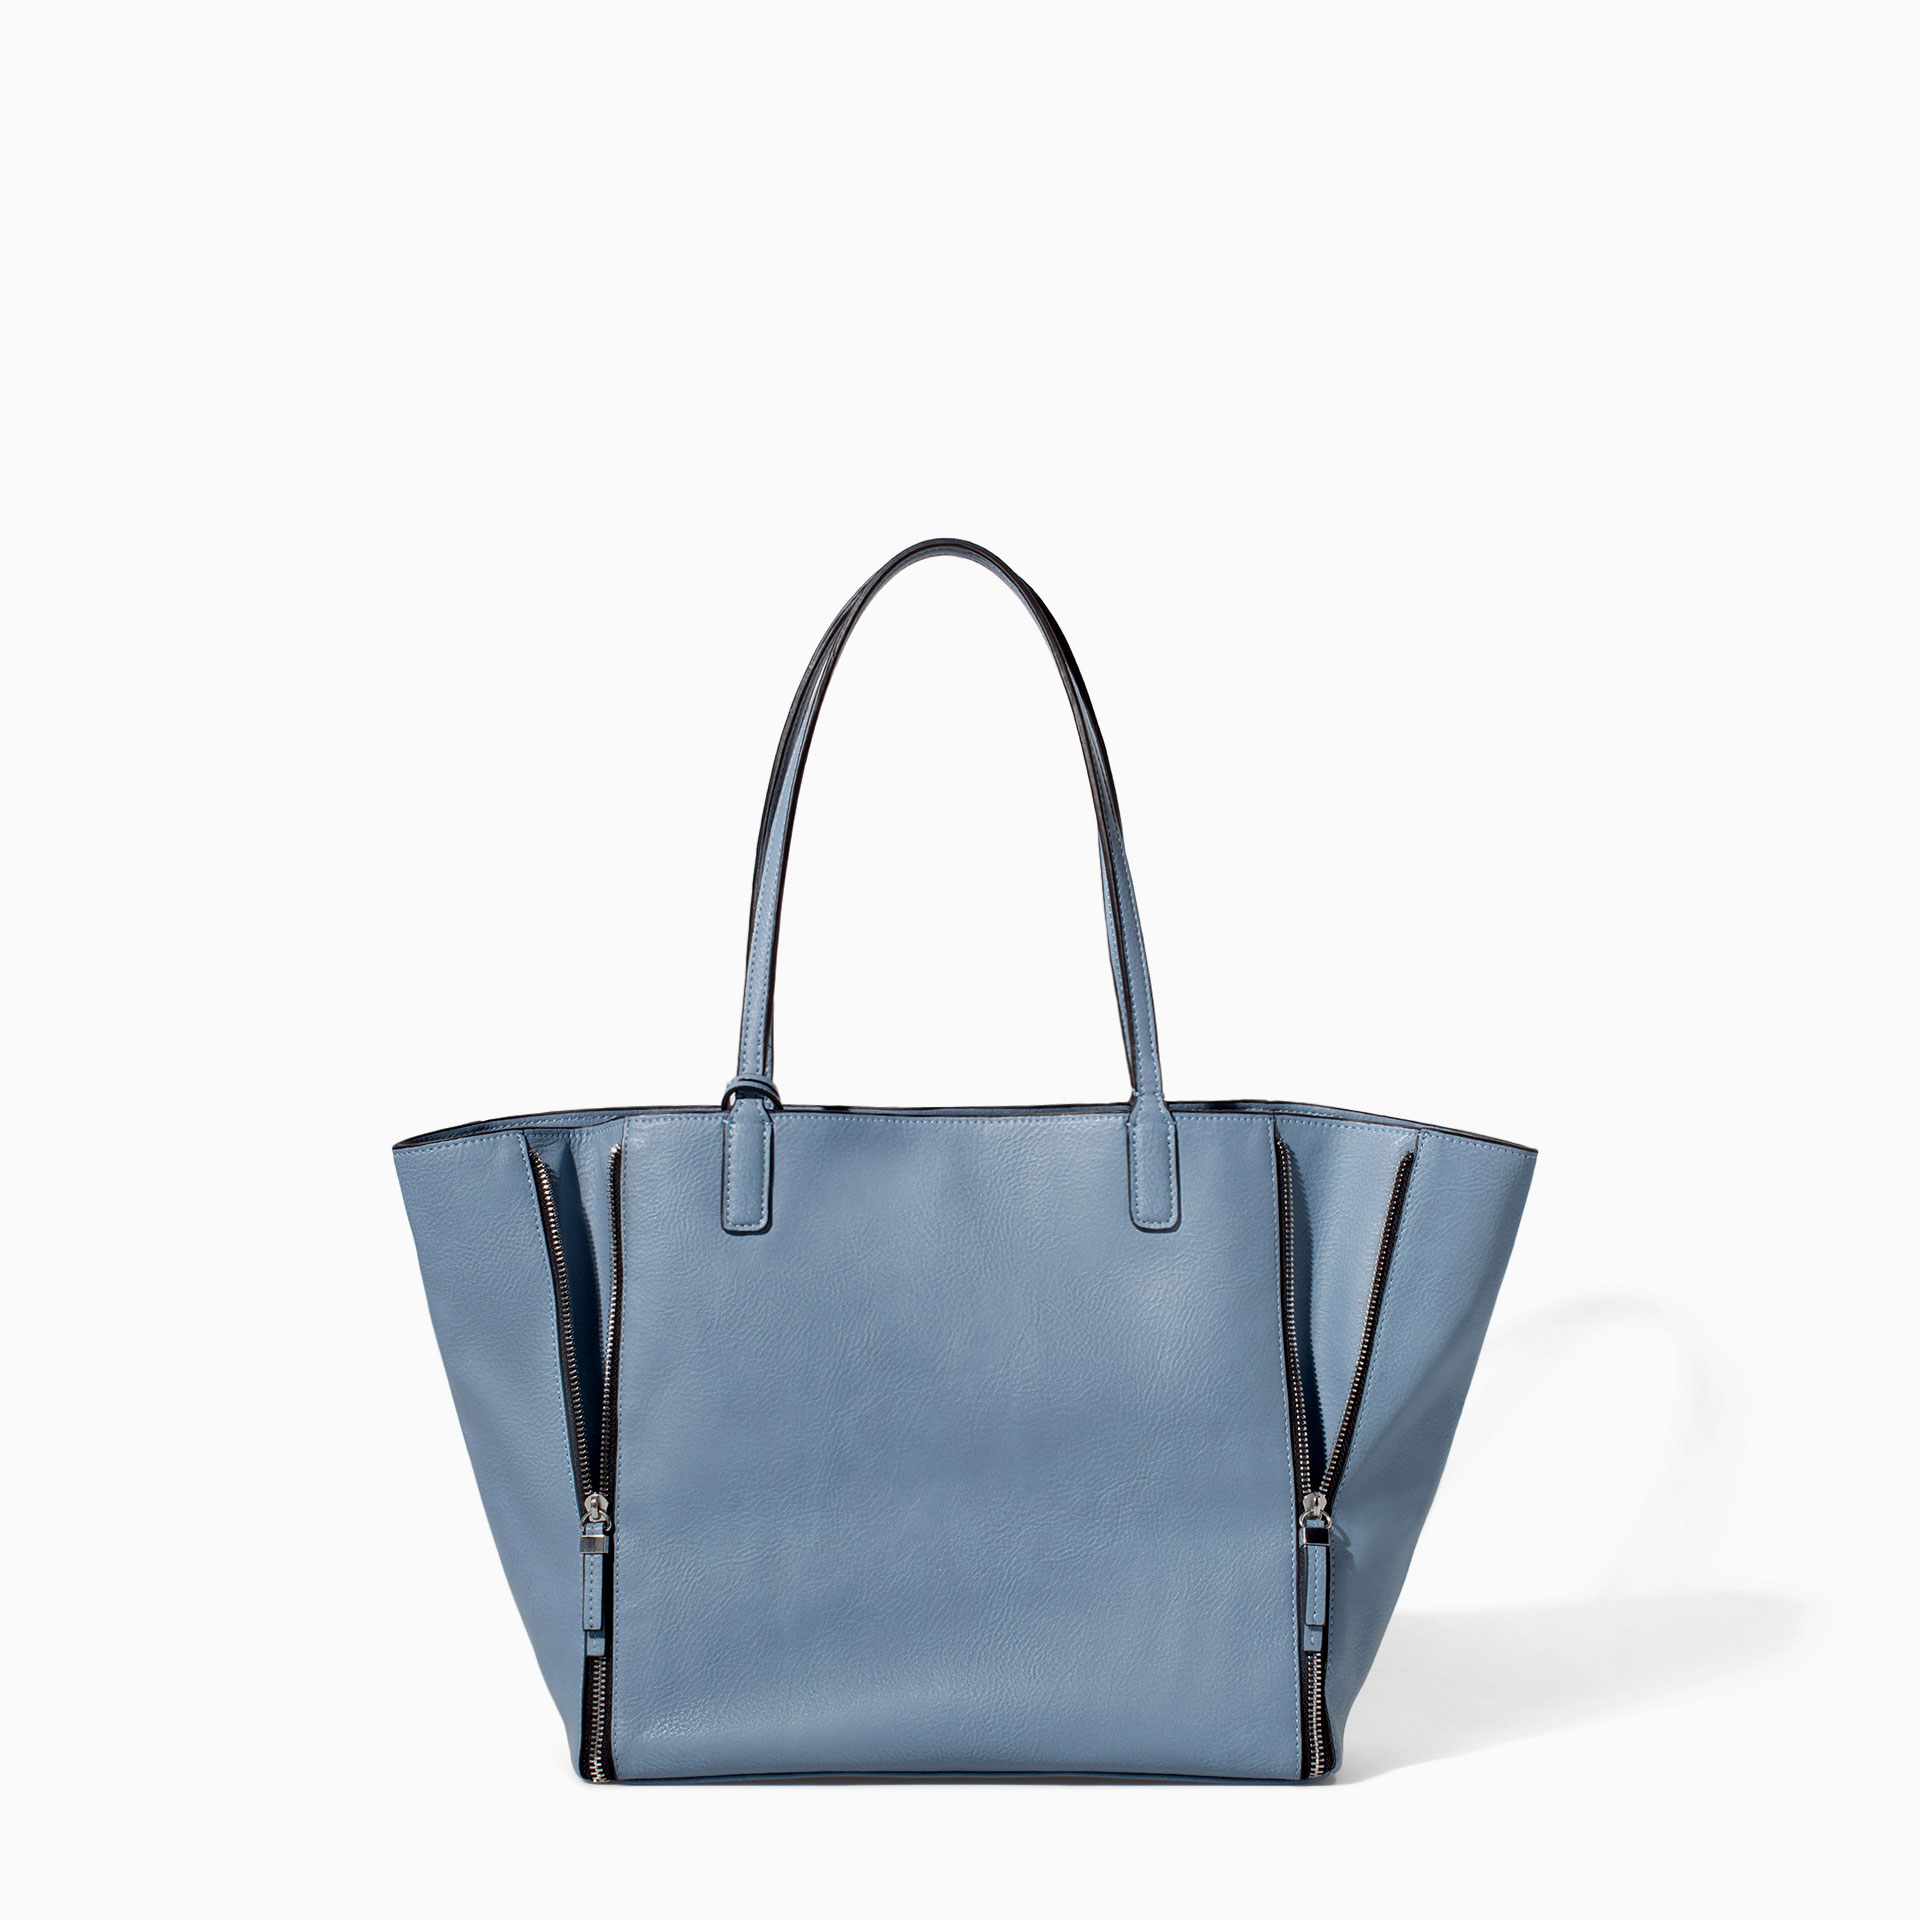 Zara Combined Shopper Bag in Blue (Jeans)